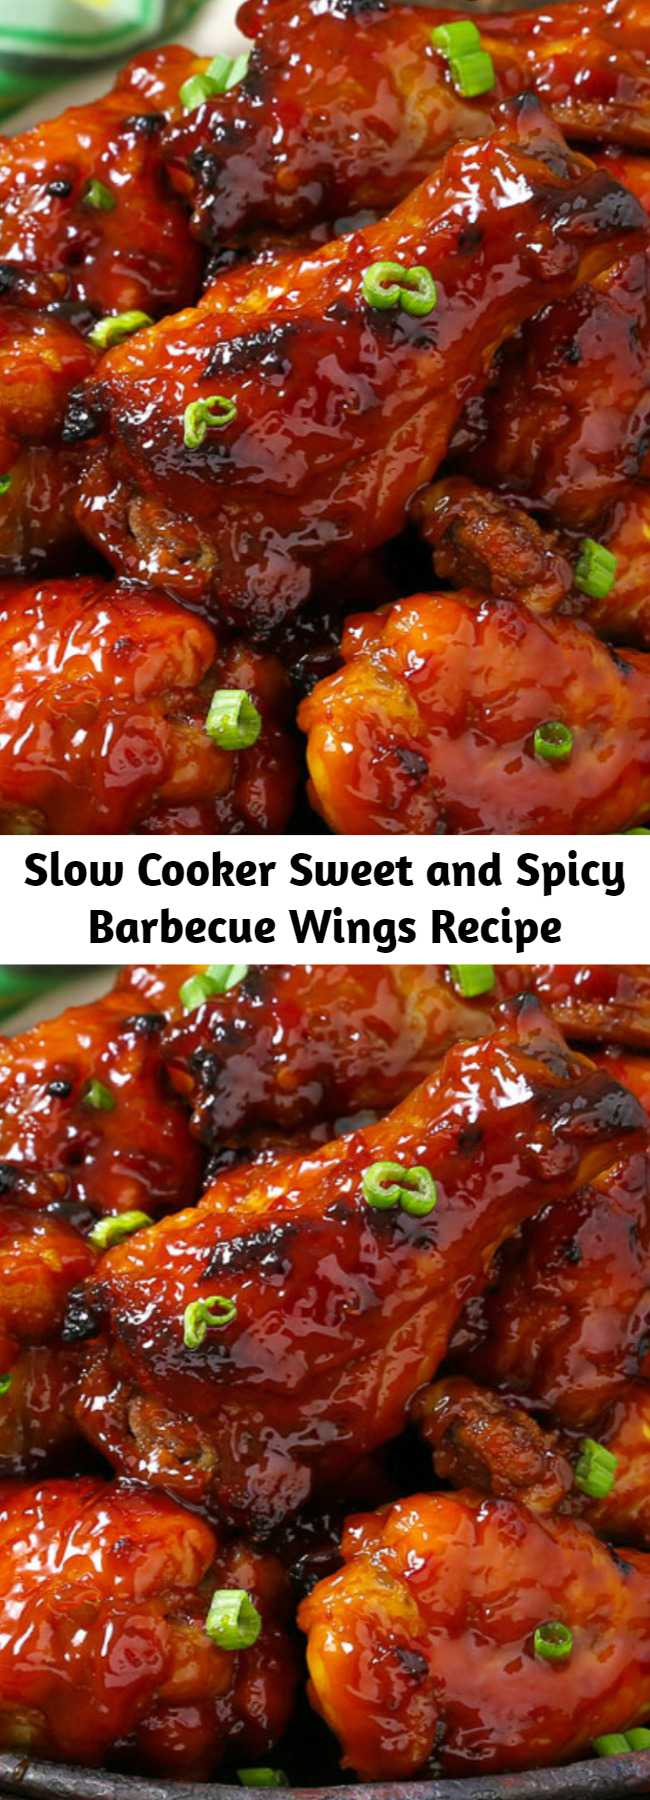 Slow Cooker Sweet and Spicy Barbecue Wings are so tender the meat falls off the bone and melts in your mouth. You get the best of both worlds with this bold barbecue sauce. Made in the crockpot you won't find an easier recipe! They just about cook themselves. #Crockpot #Appetizer